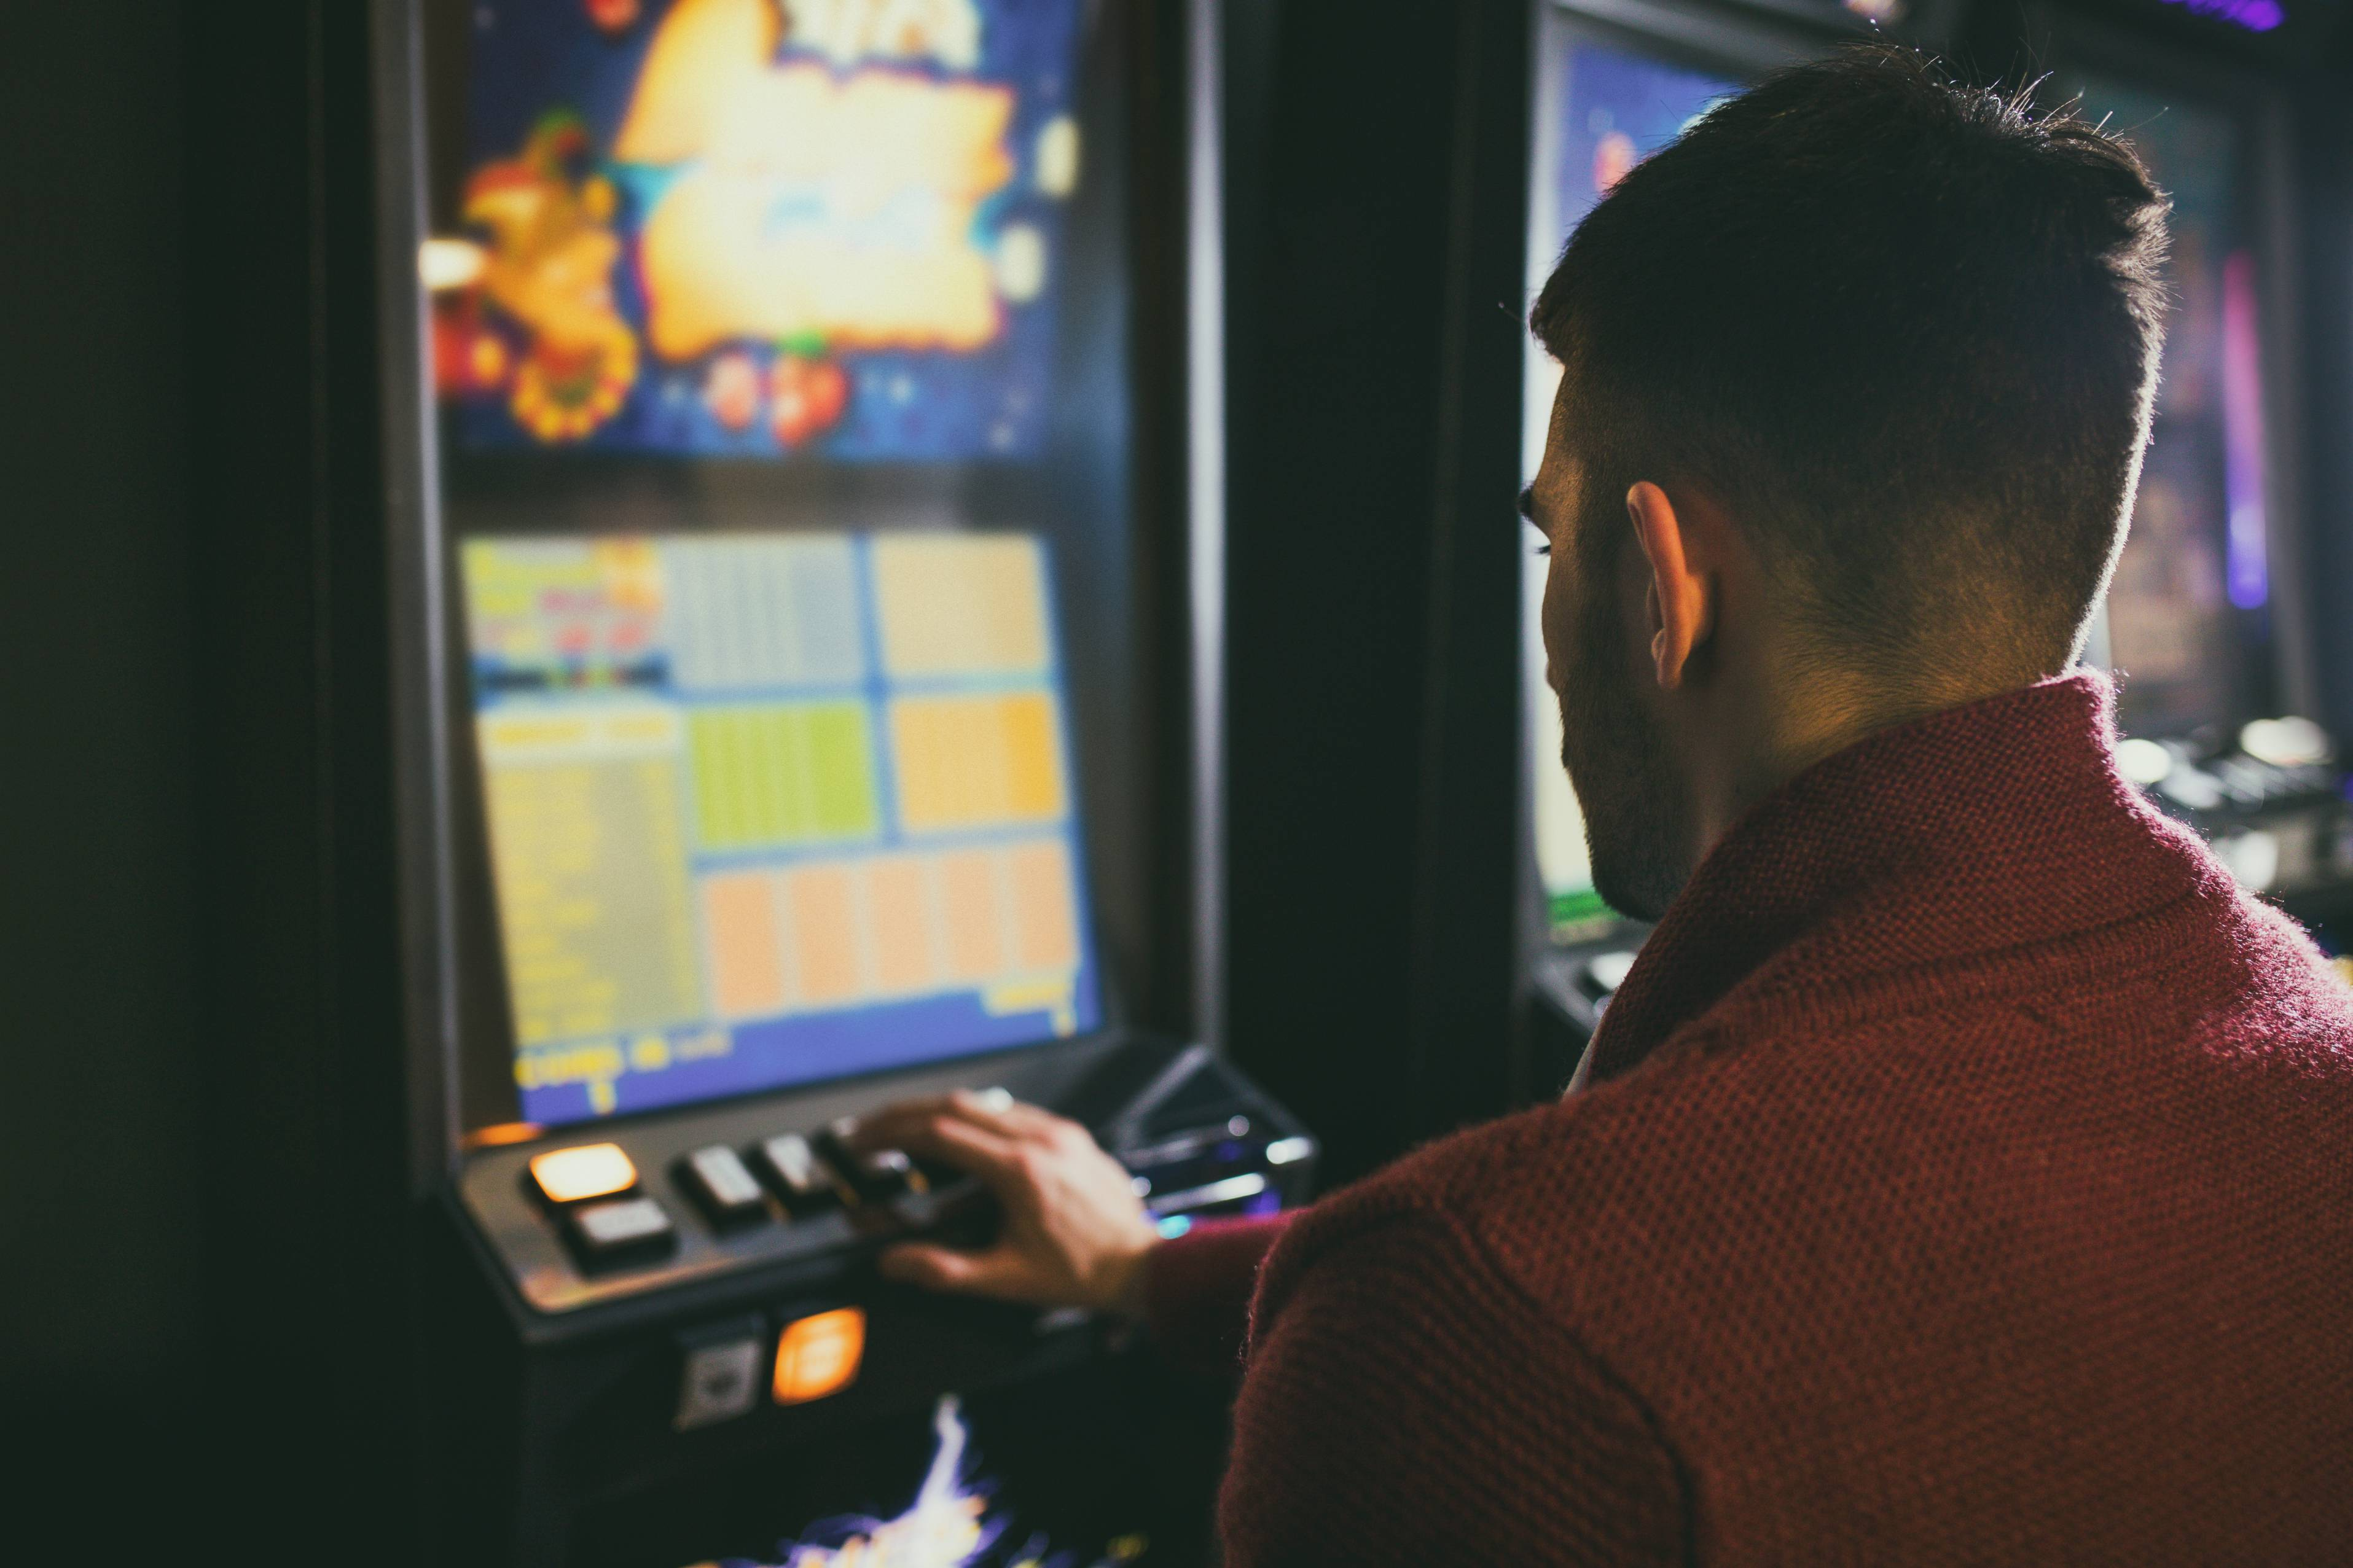 HABIT FORMING: Asians may be more drawn to gambling due to it being easier to hide, say addiction therapists